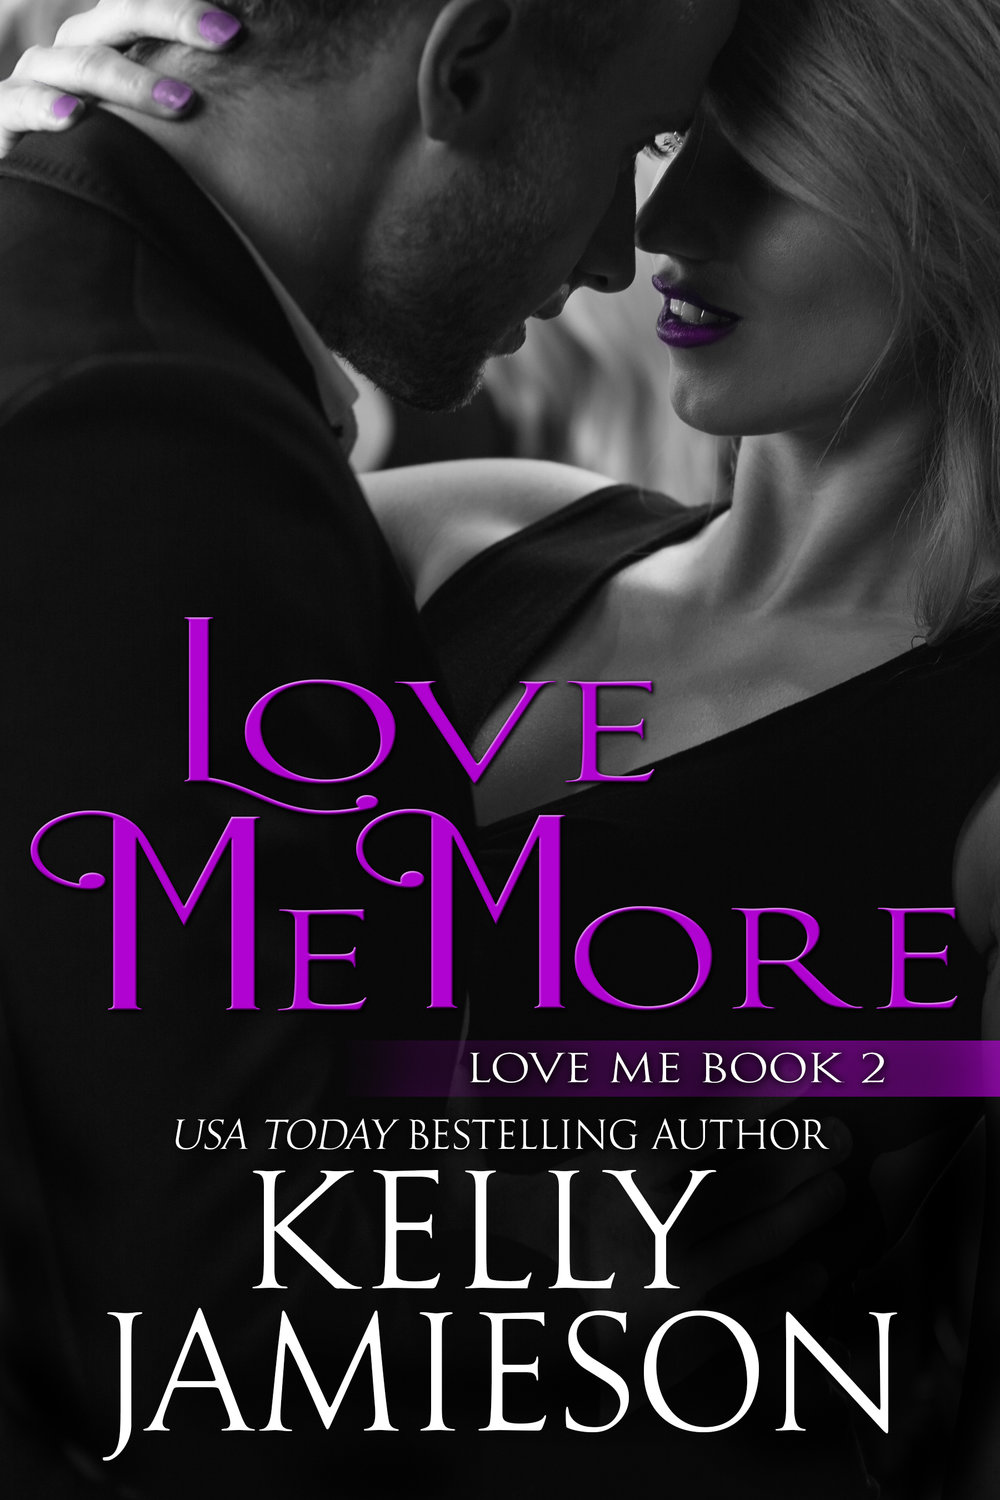 Kelly Jamieson Love Me More Love Me 2.jpg